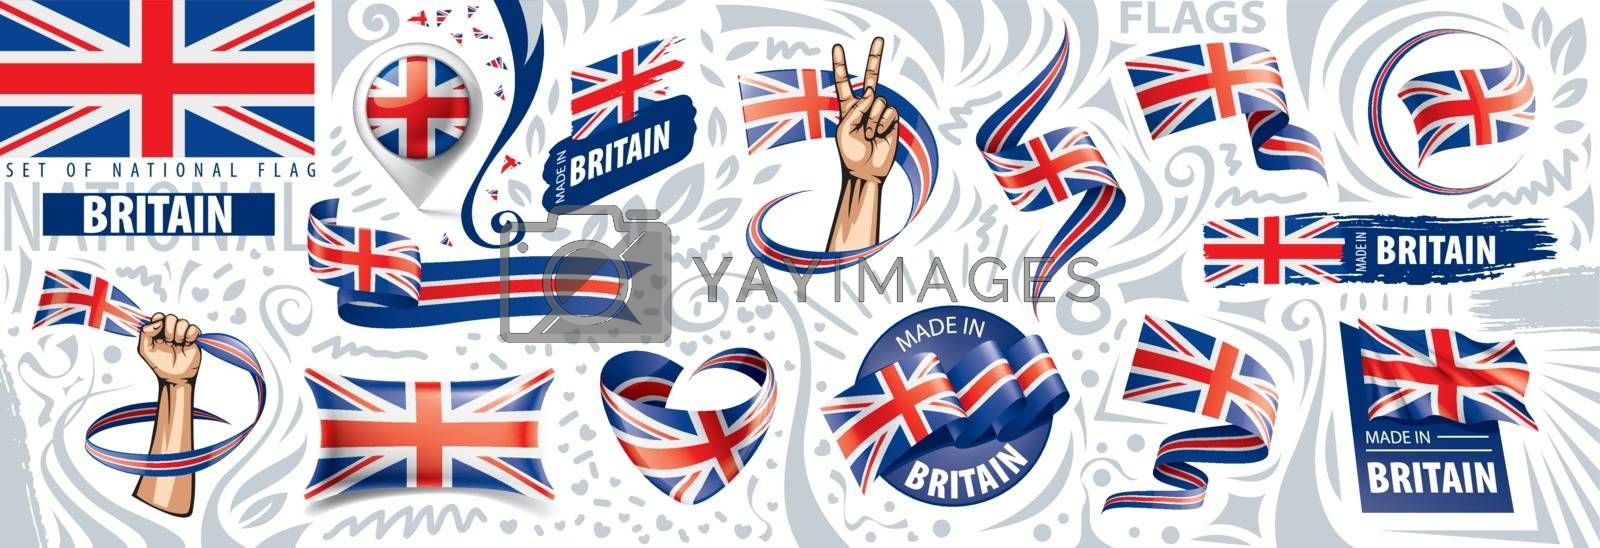 United Kingdom flag, vector illustration on a white background by Butenkov